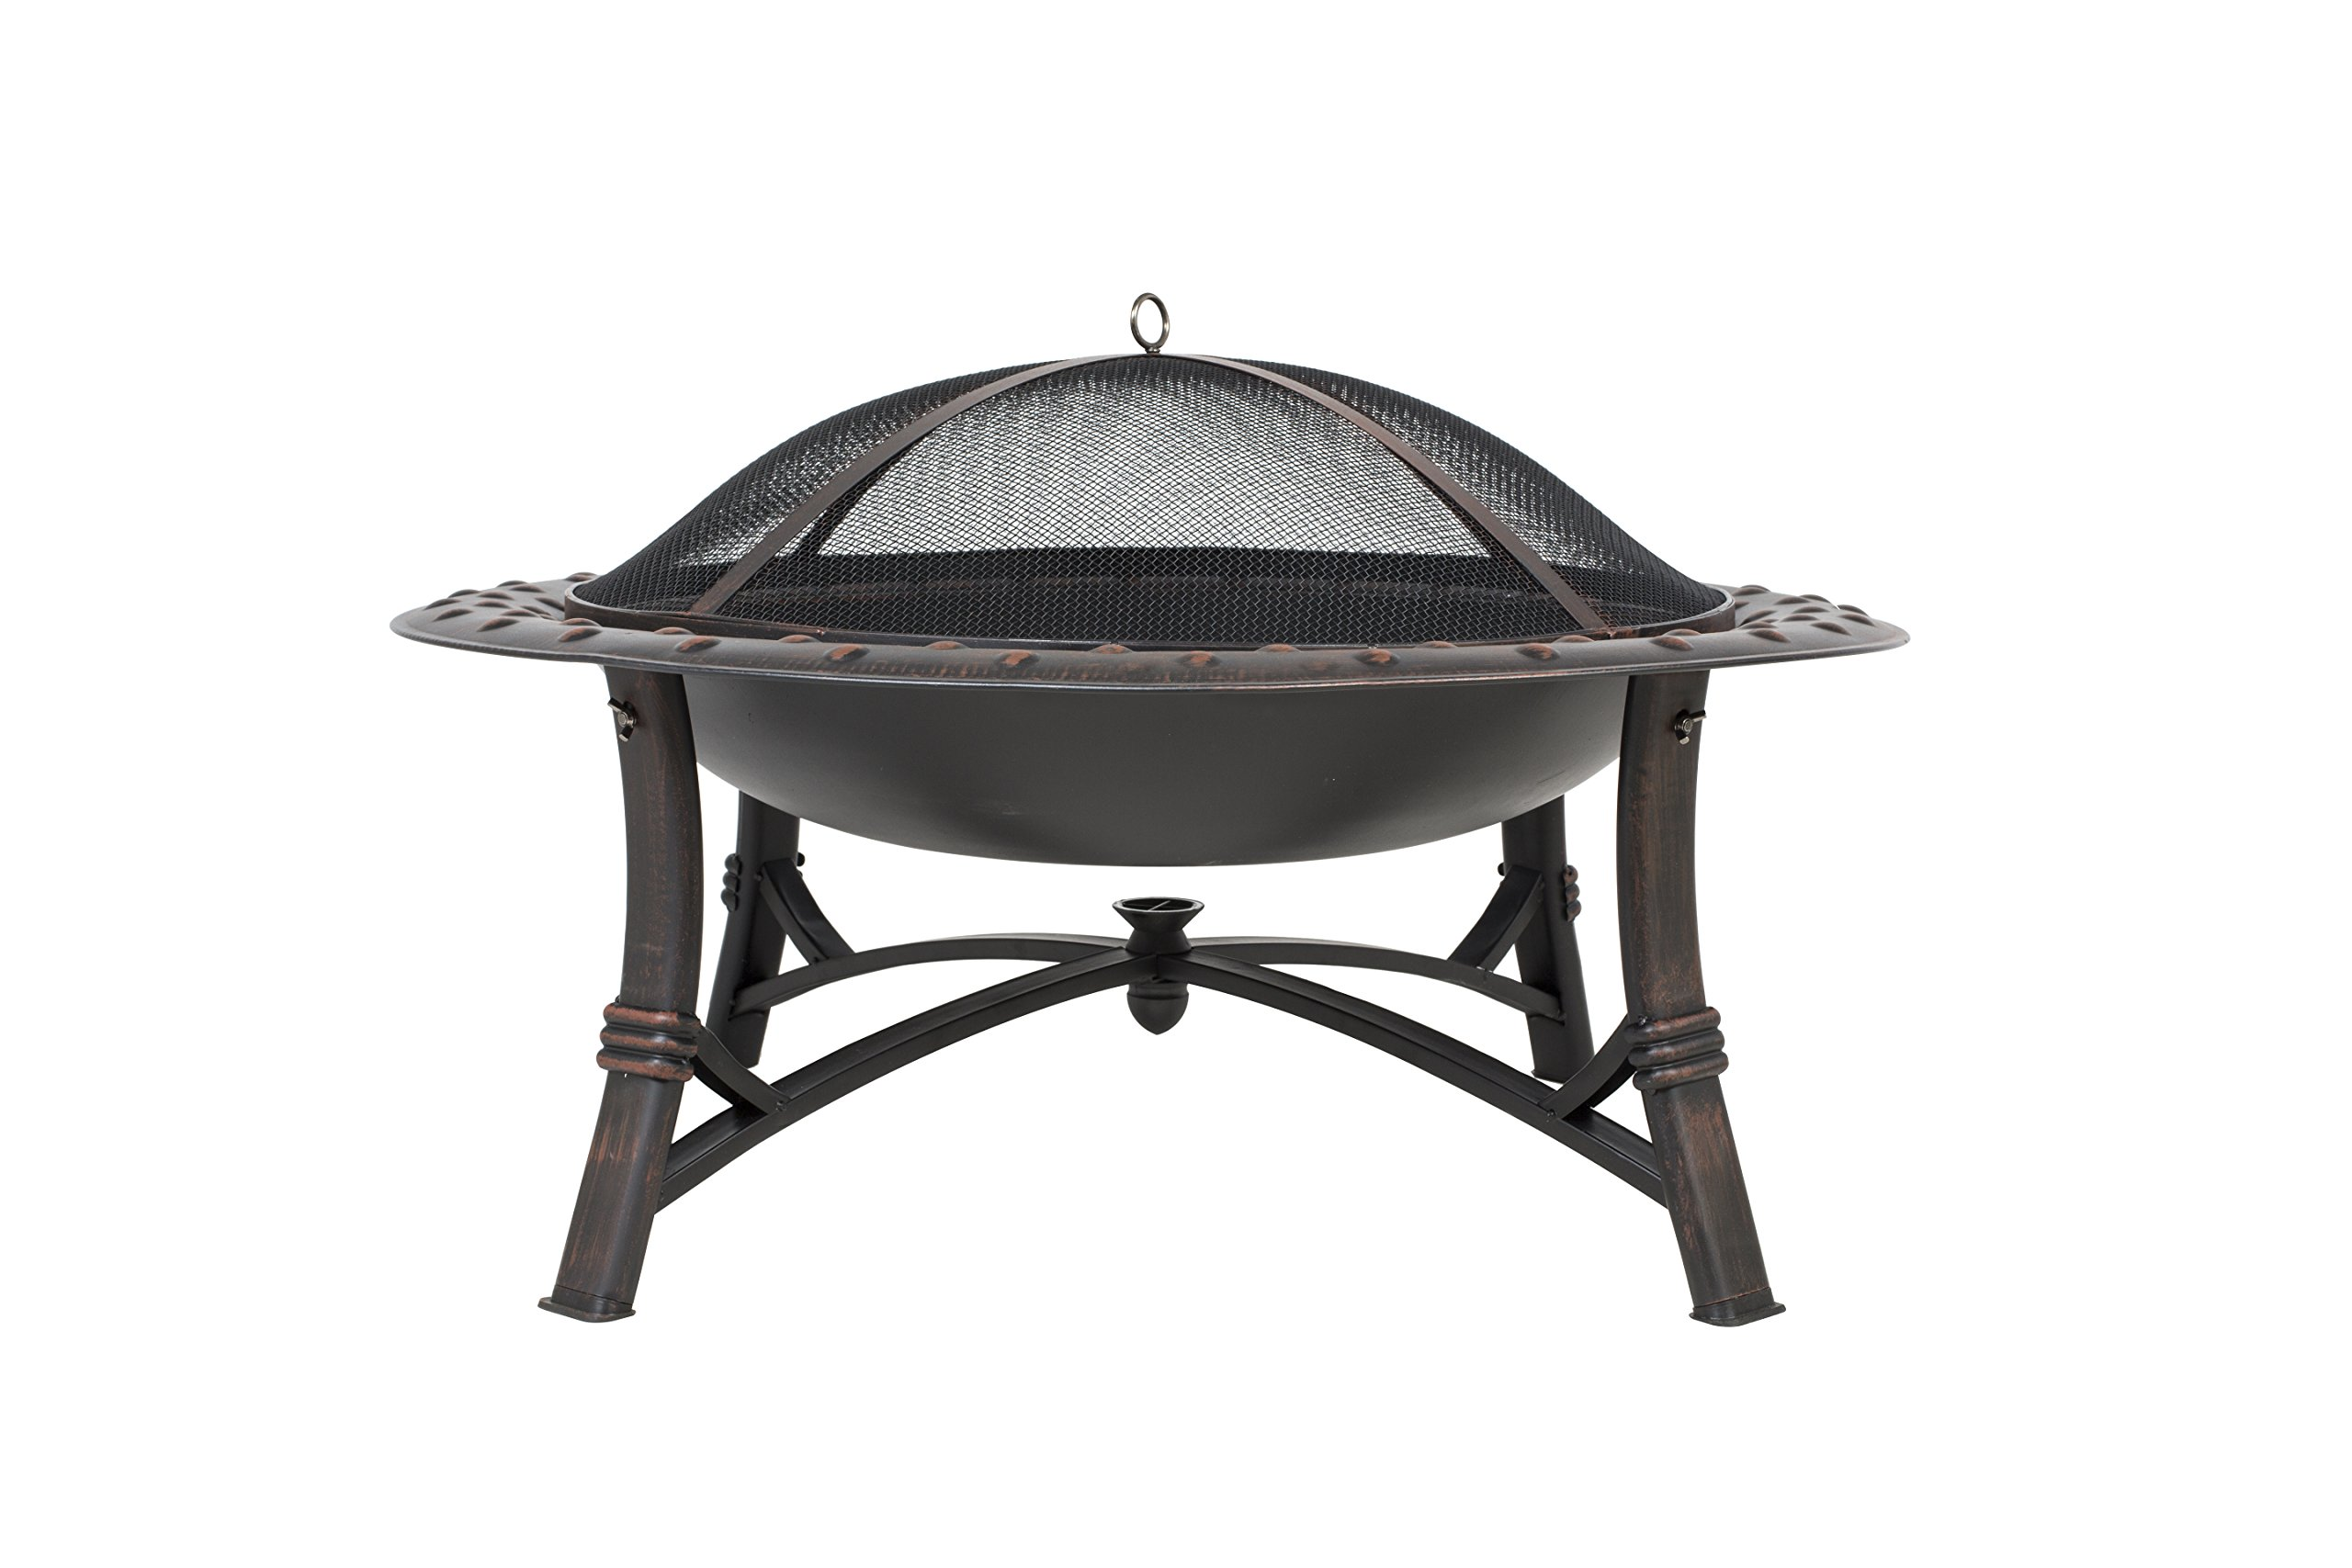 La Hacienda 58188US Alabama Fire Pit, X-Large, Bronze